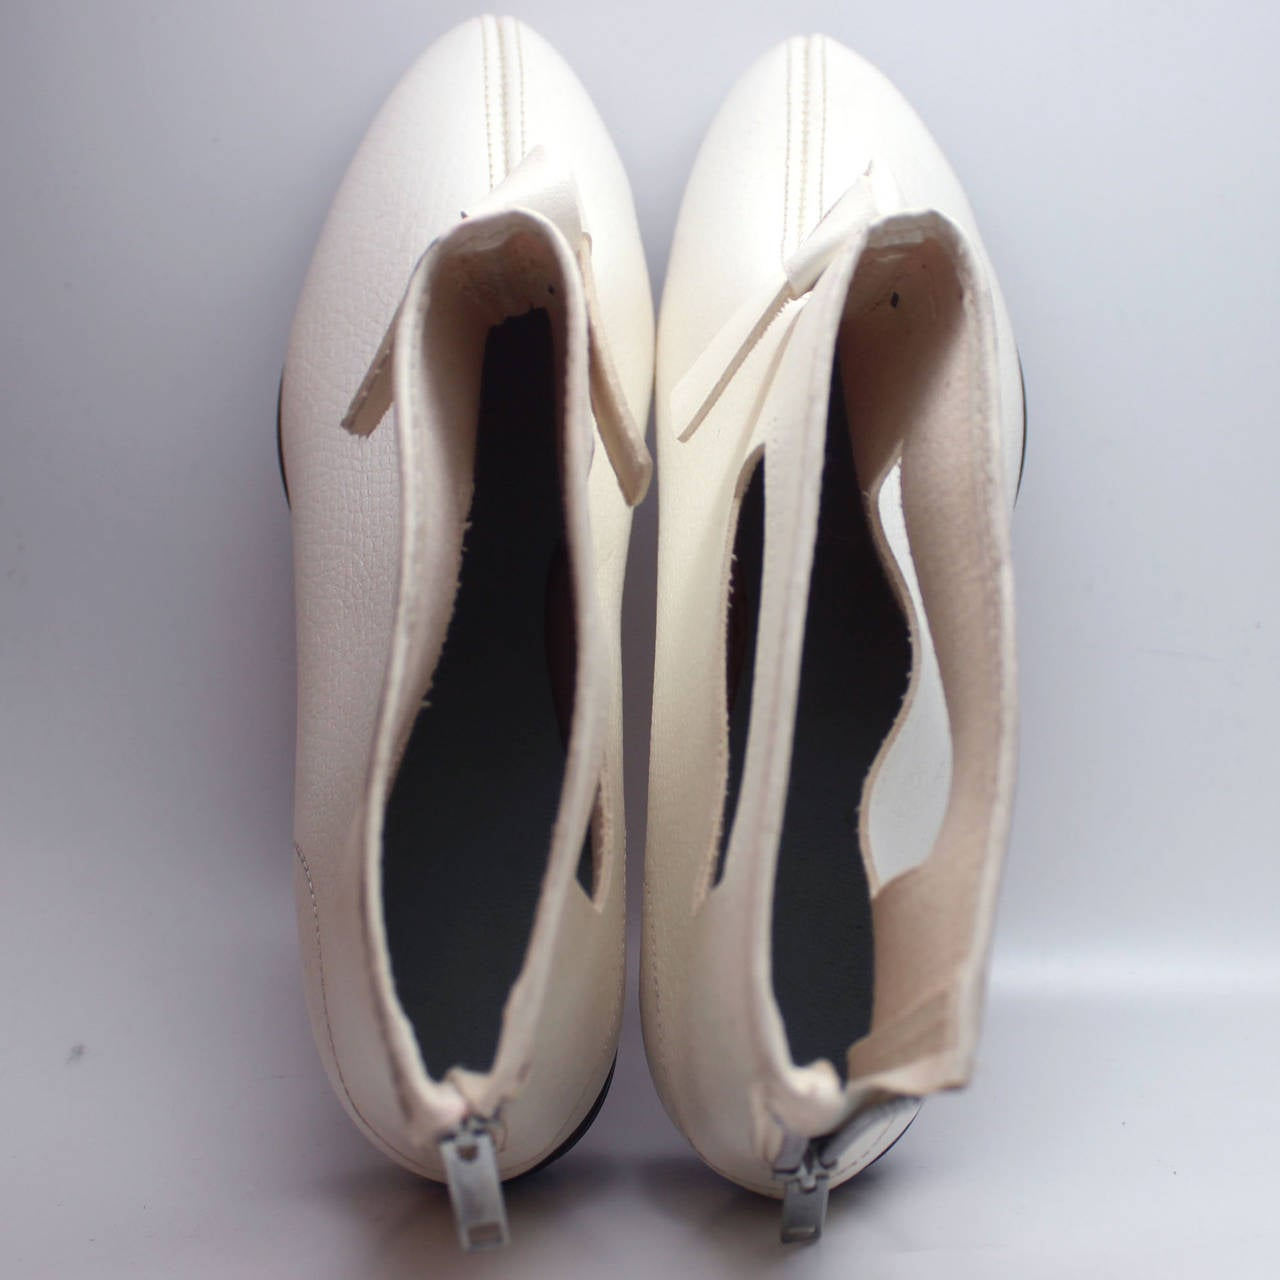 Rare 1960s Hullabaloo Cut-Out Go Go Boots For Sale 4